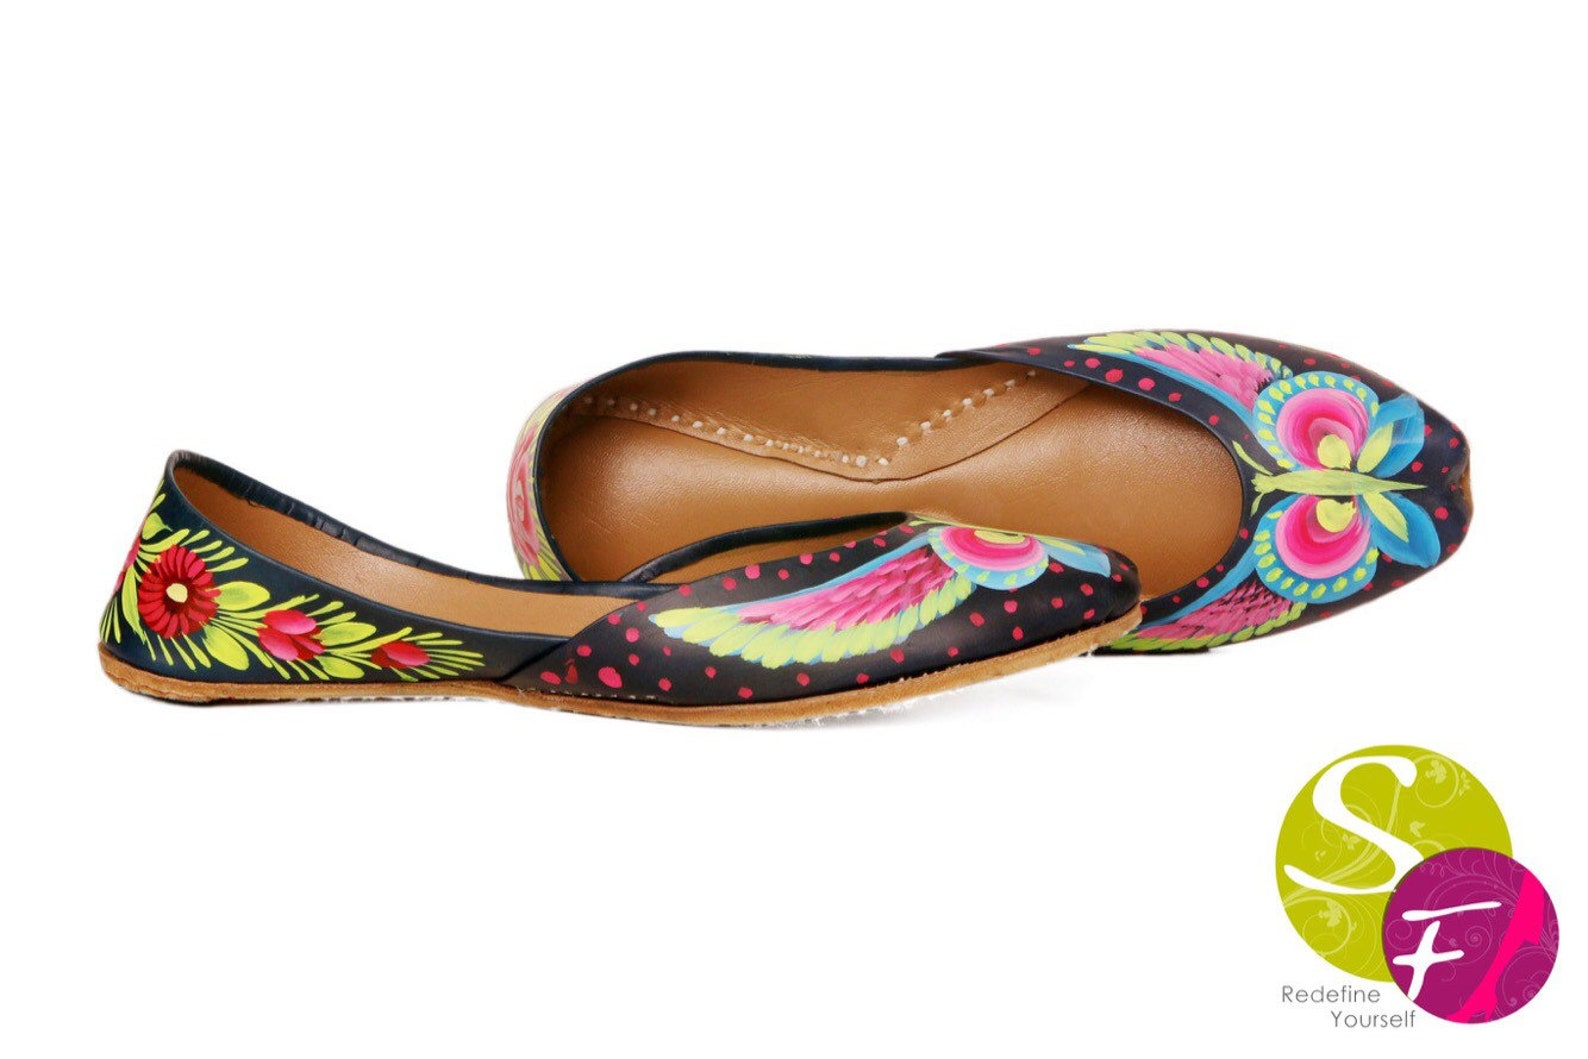 butterfly handpainted women flat shoes ballet flats handpainted khussa juti ethnic painted shoes handpainted mojari indian jutti